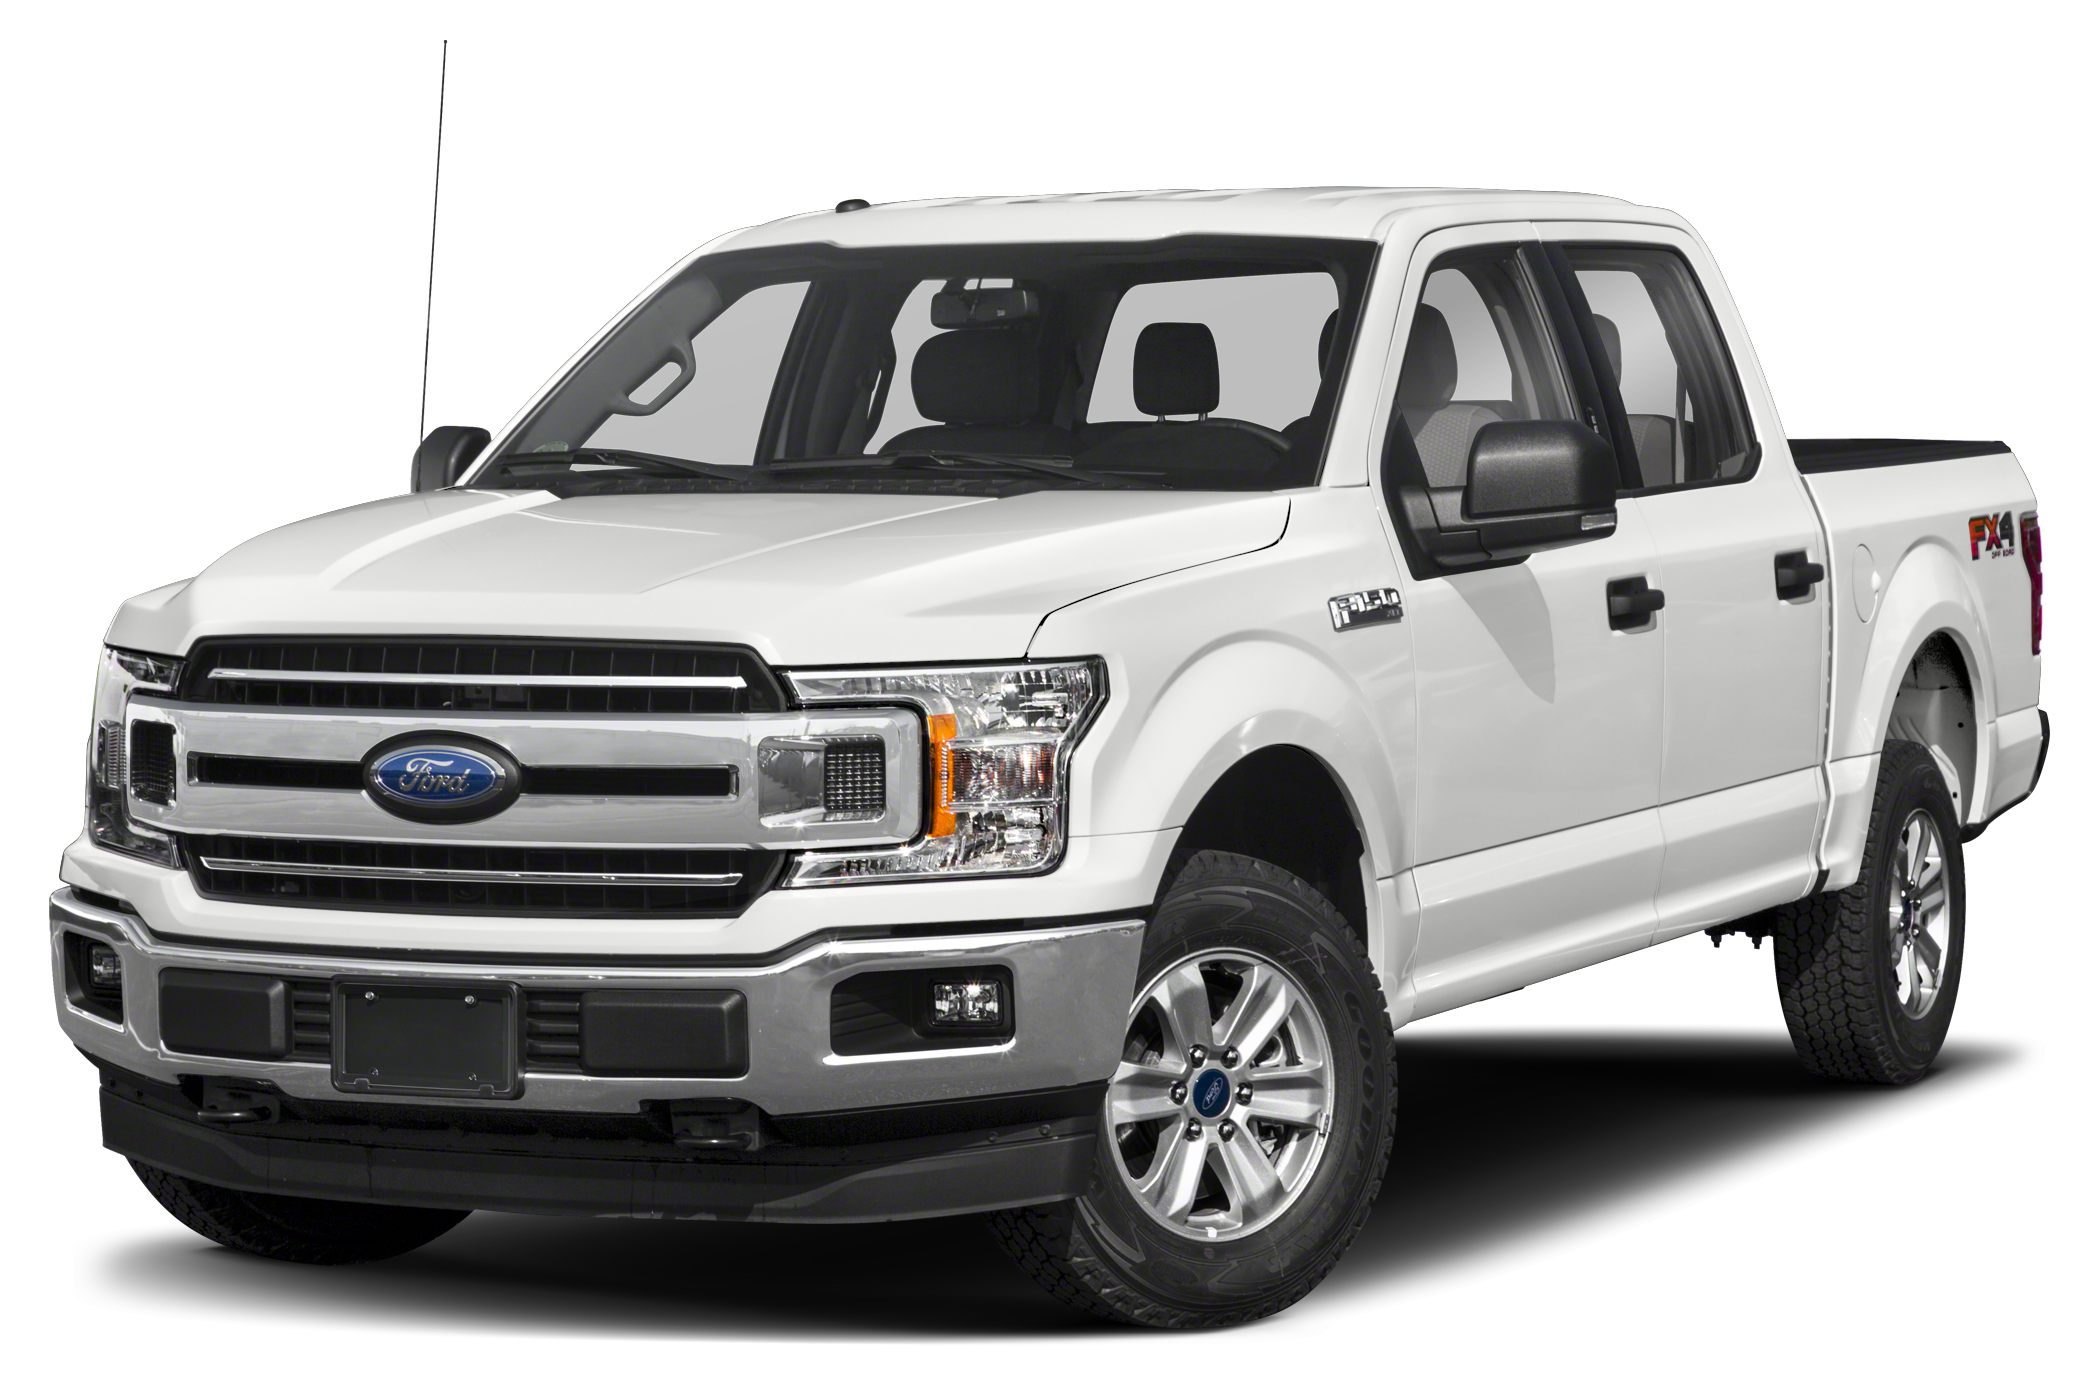 Ford F 150 Trim Levels >> 2019 Ford F 150 Xlt 4x4 Supercrew Cab Styleside 5 5 Ft Box 145 In Wb Pictures